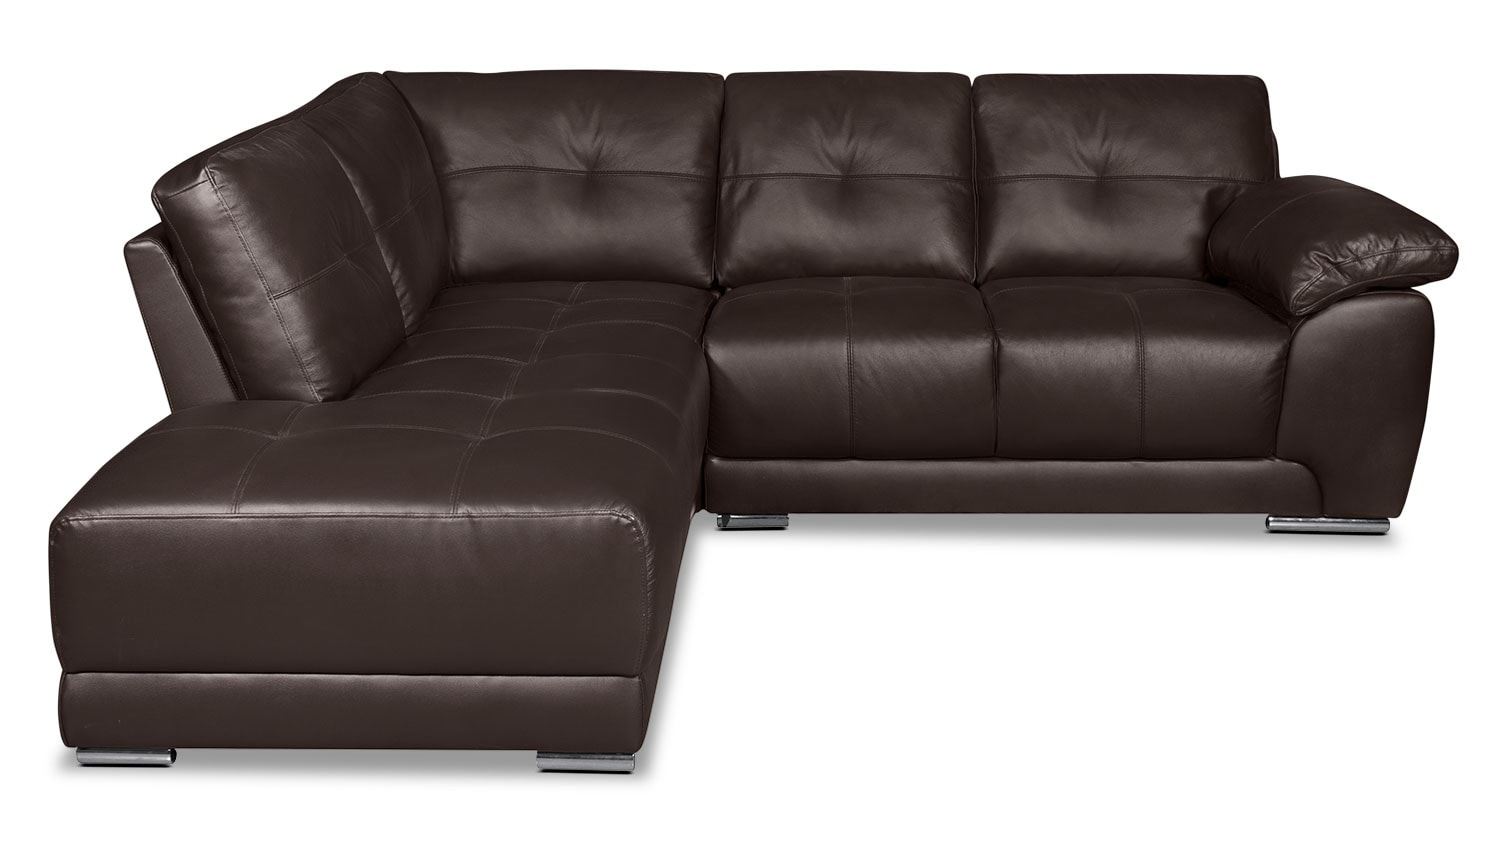 Rylee 2 piece genuine leather left facing sectional for Macys rylee sectional sofa